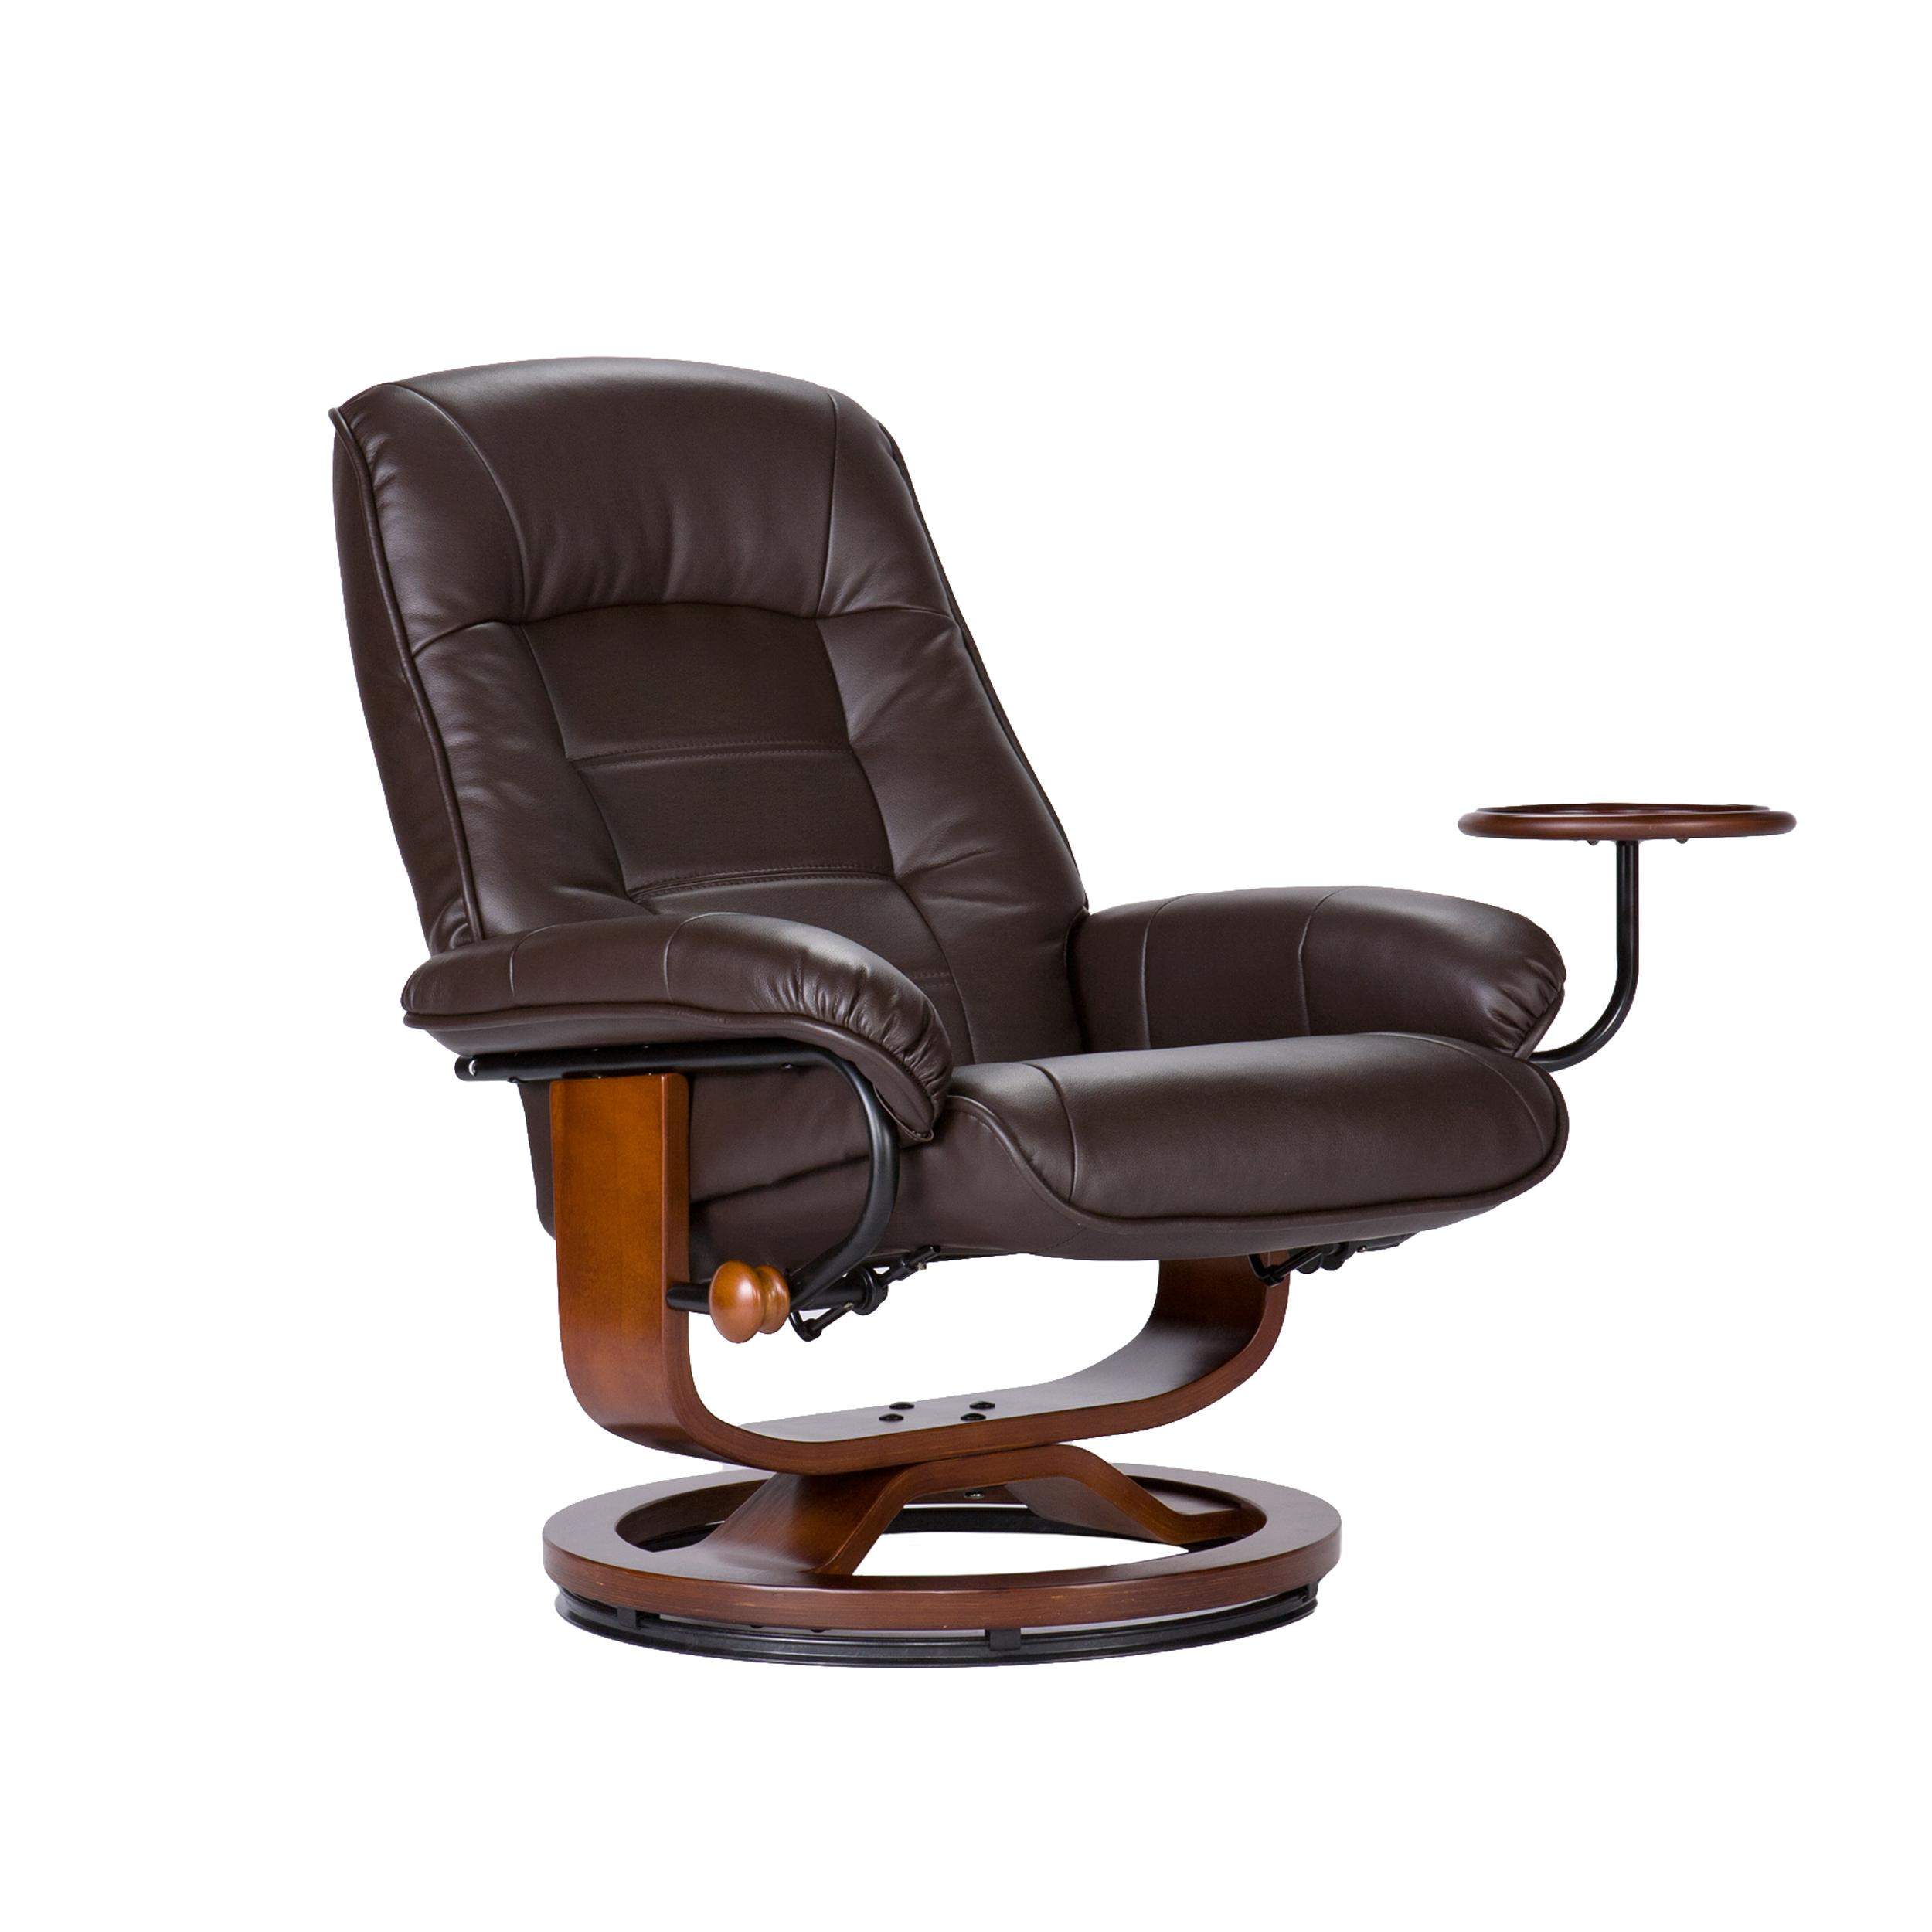 Stressless Amazon Amazon Southern Enterprises Leather Recliner With